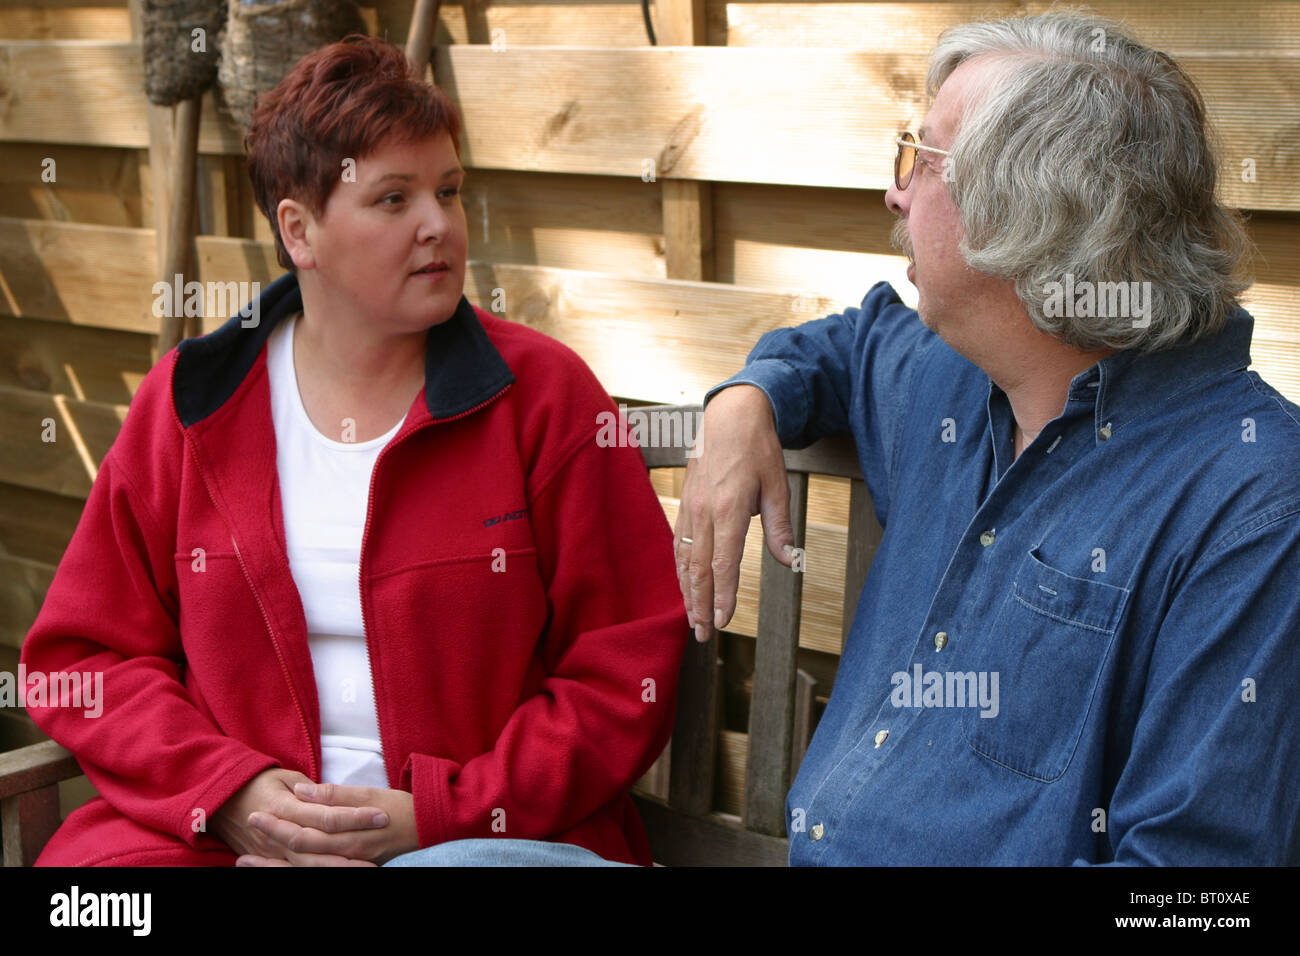 Couple arguing in back yard - Stock Image